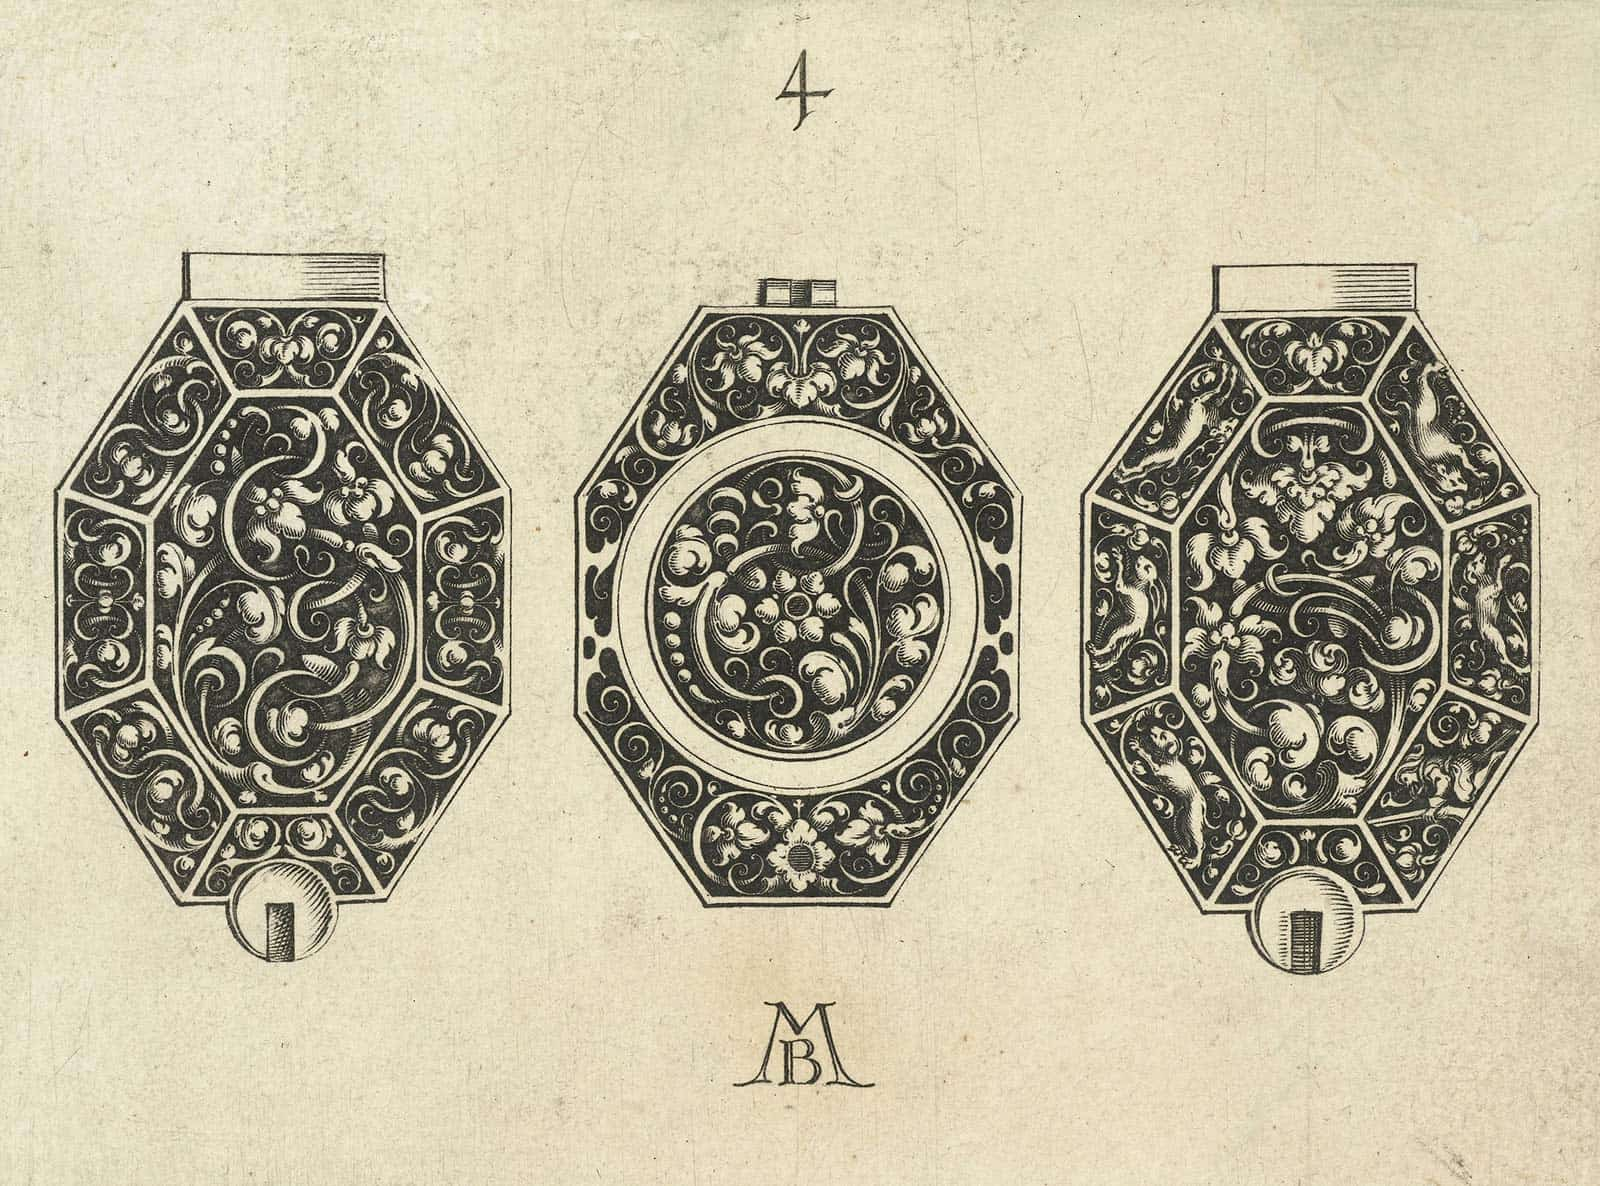 Dial and case design etching